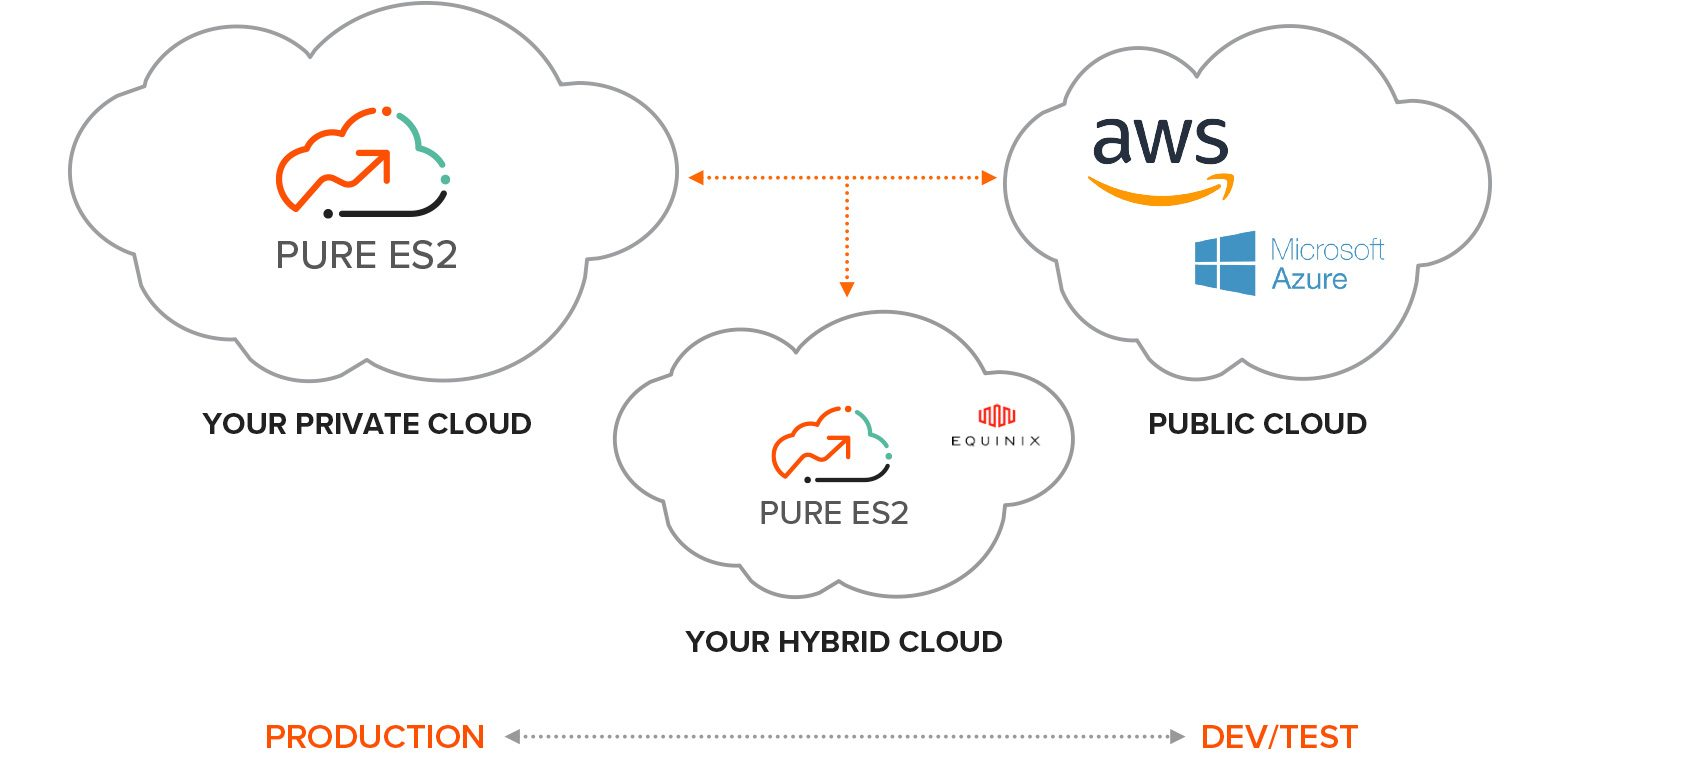 ES2 is Purpose-Built Cloud Storage